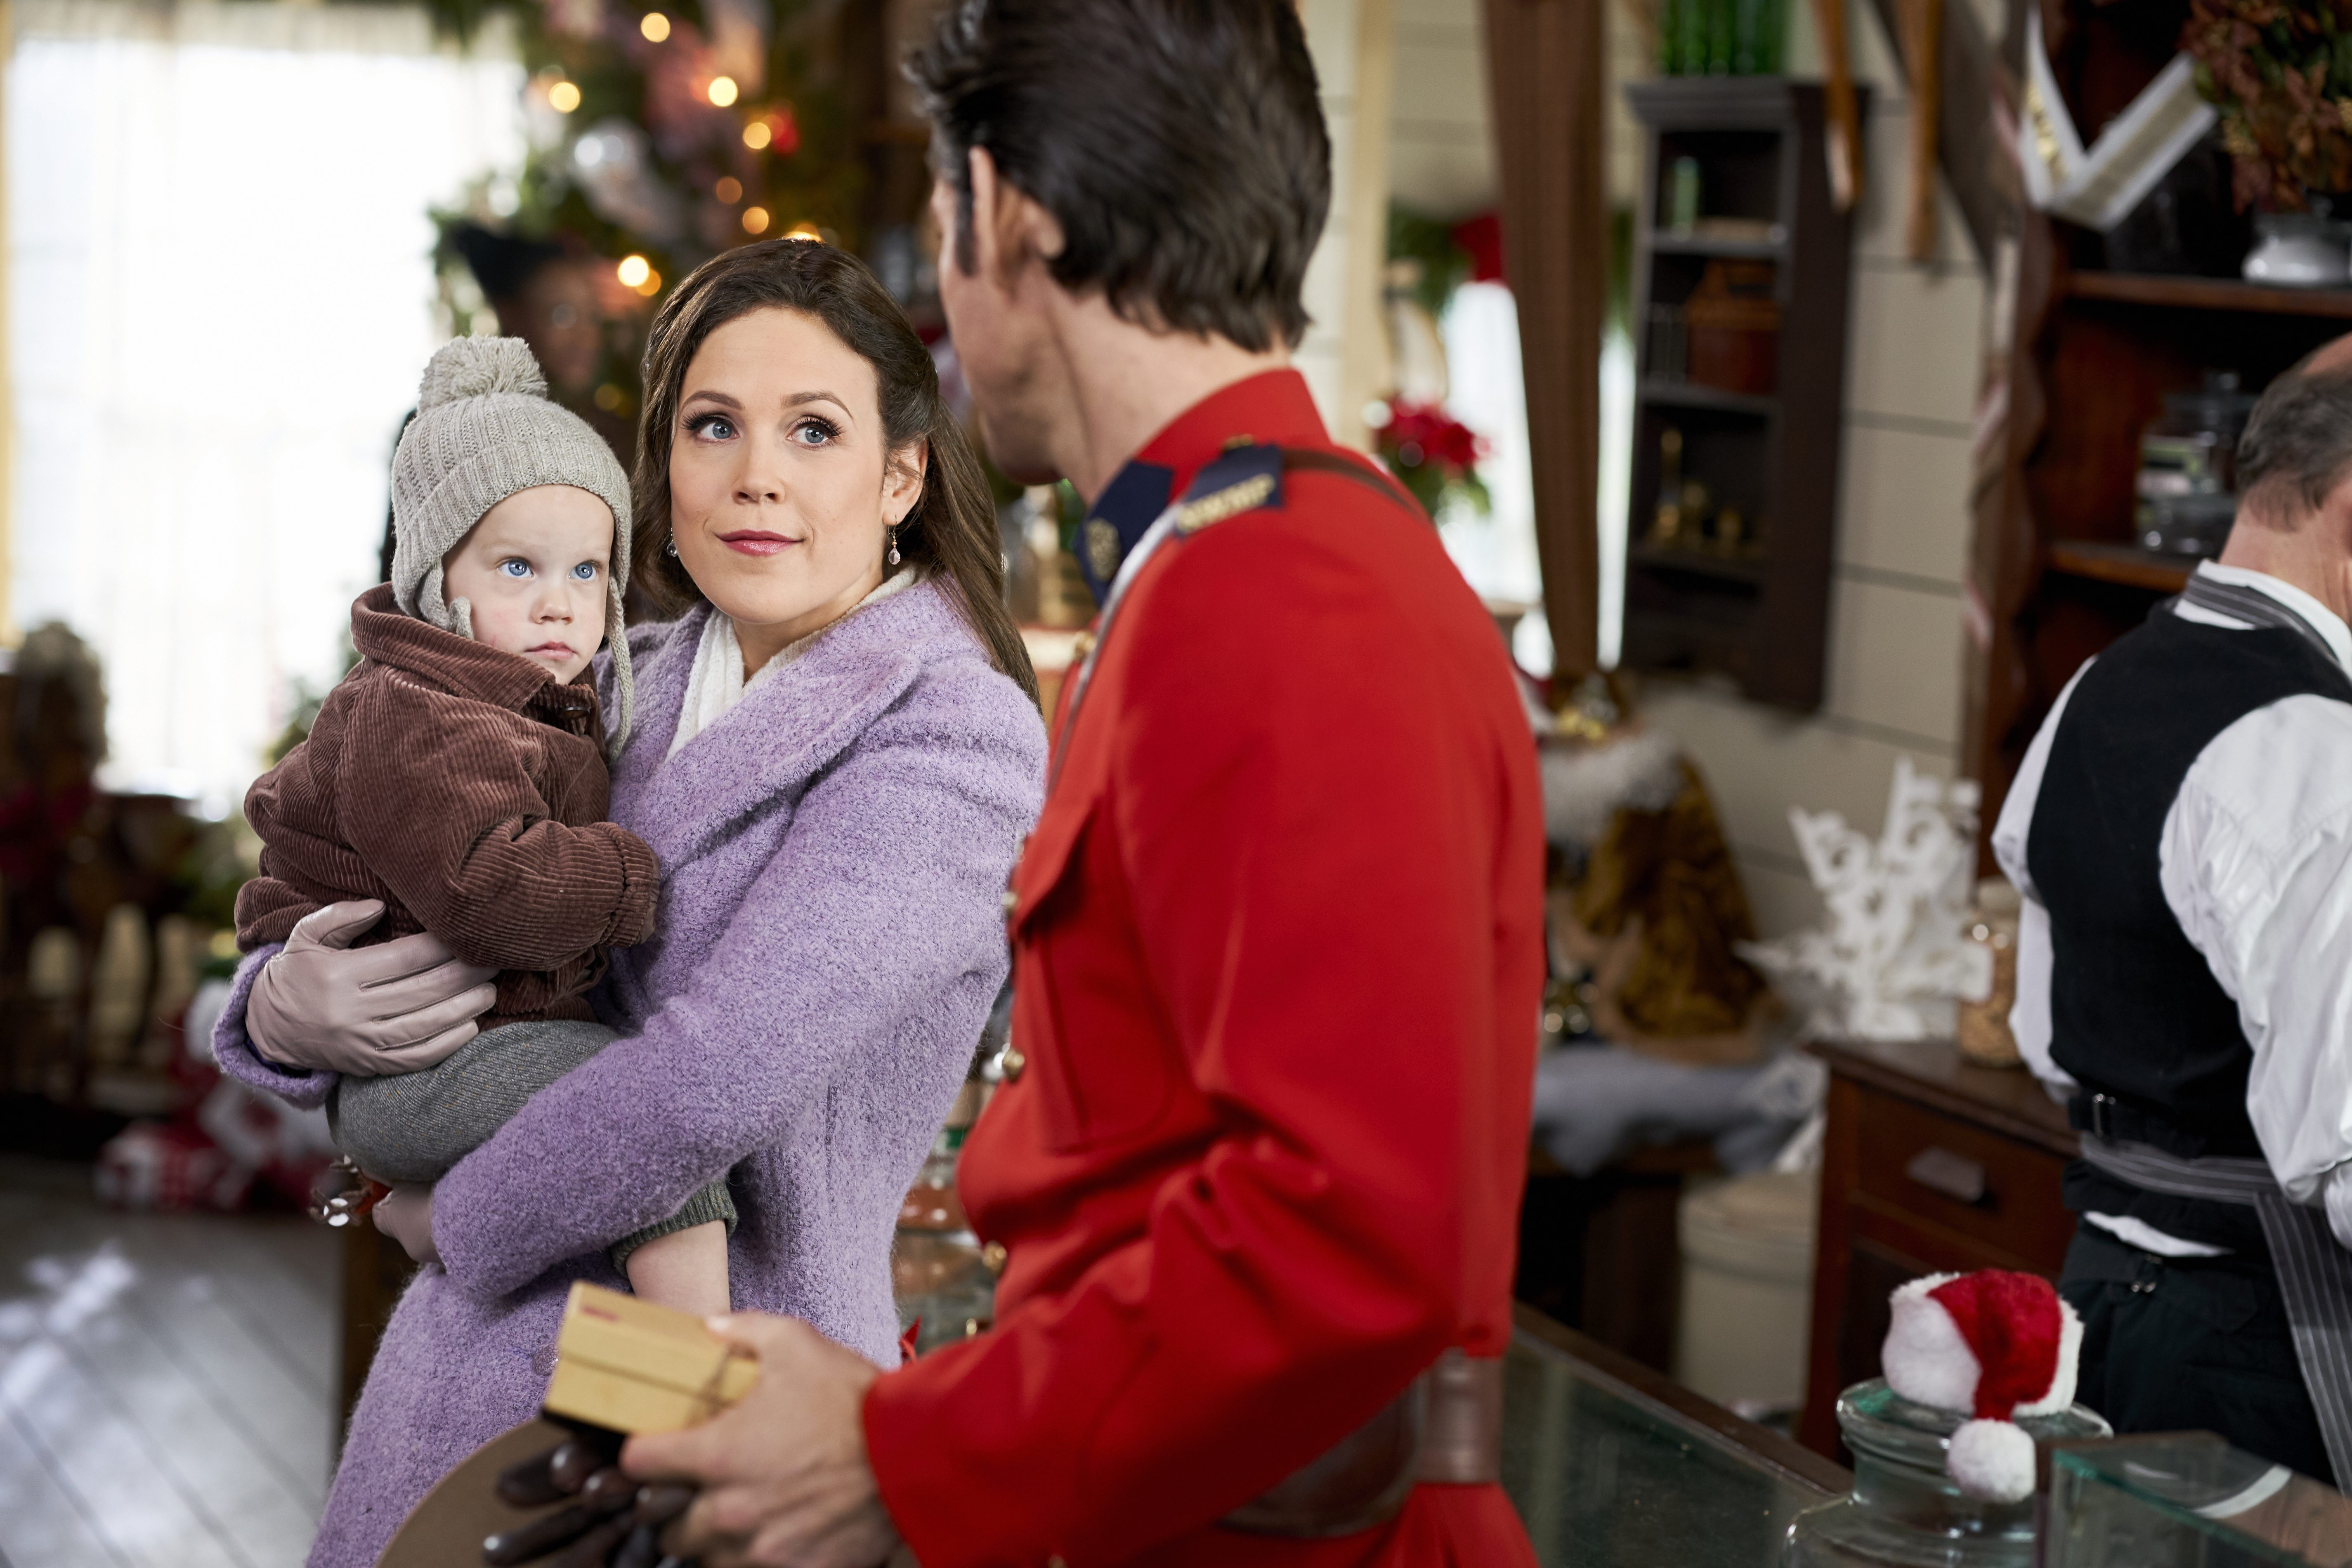 When Calls The Heart Christmas Special 2020 Full Episode When Calls the Heart: Home for Christmas': Hallmark Shares a First